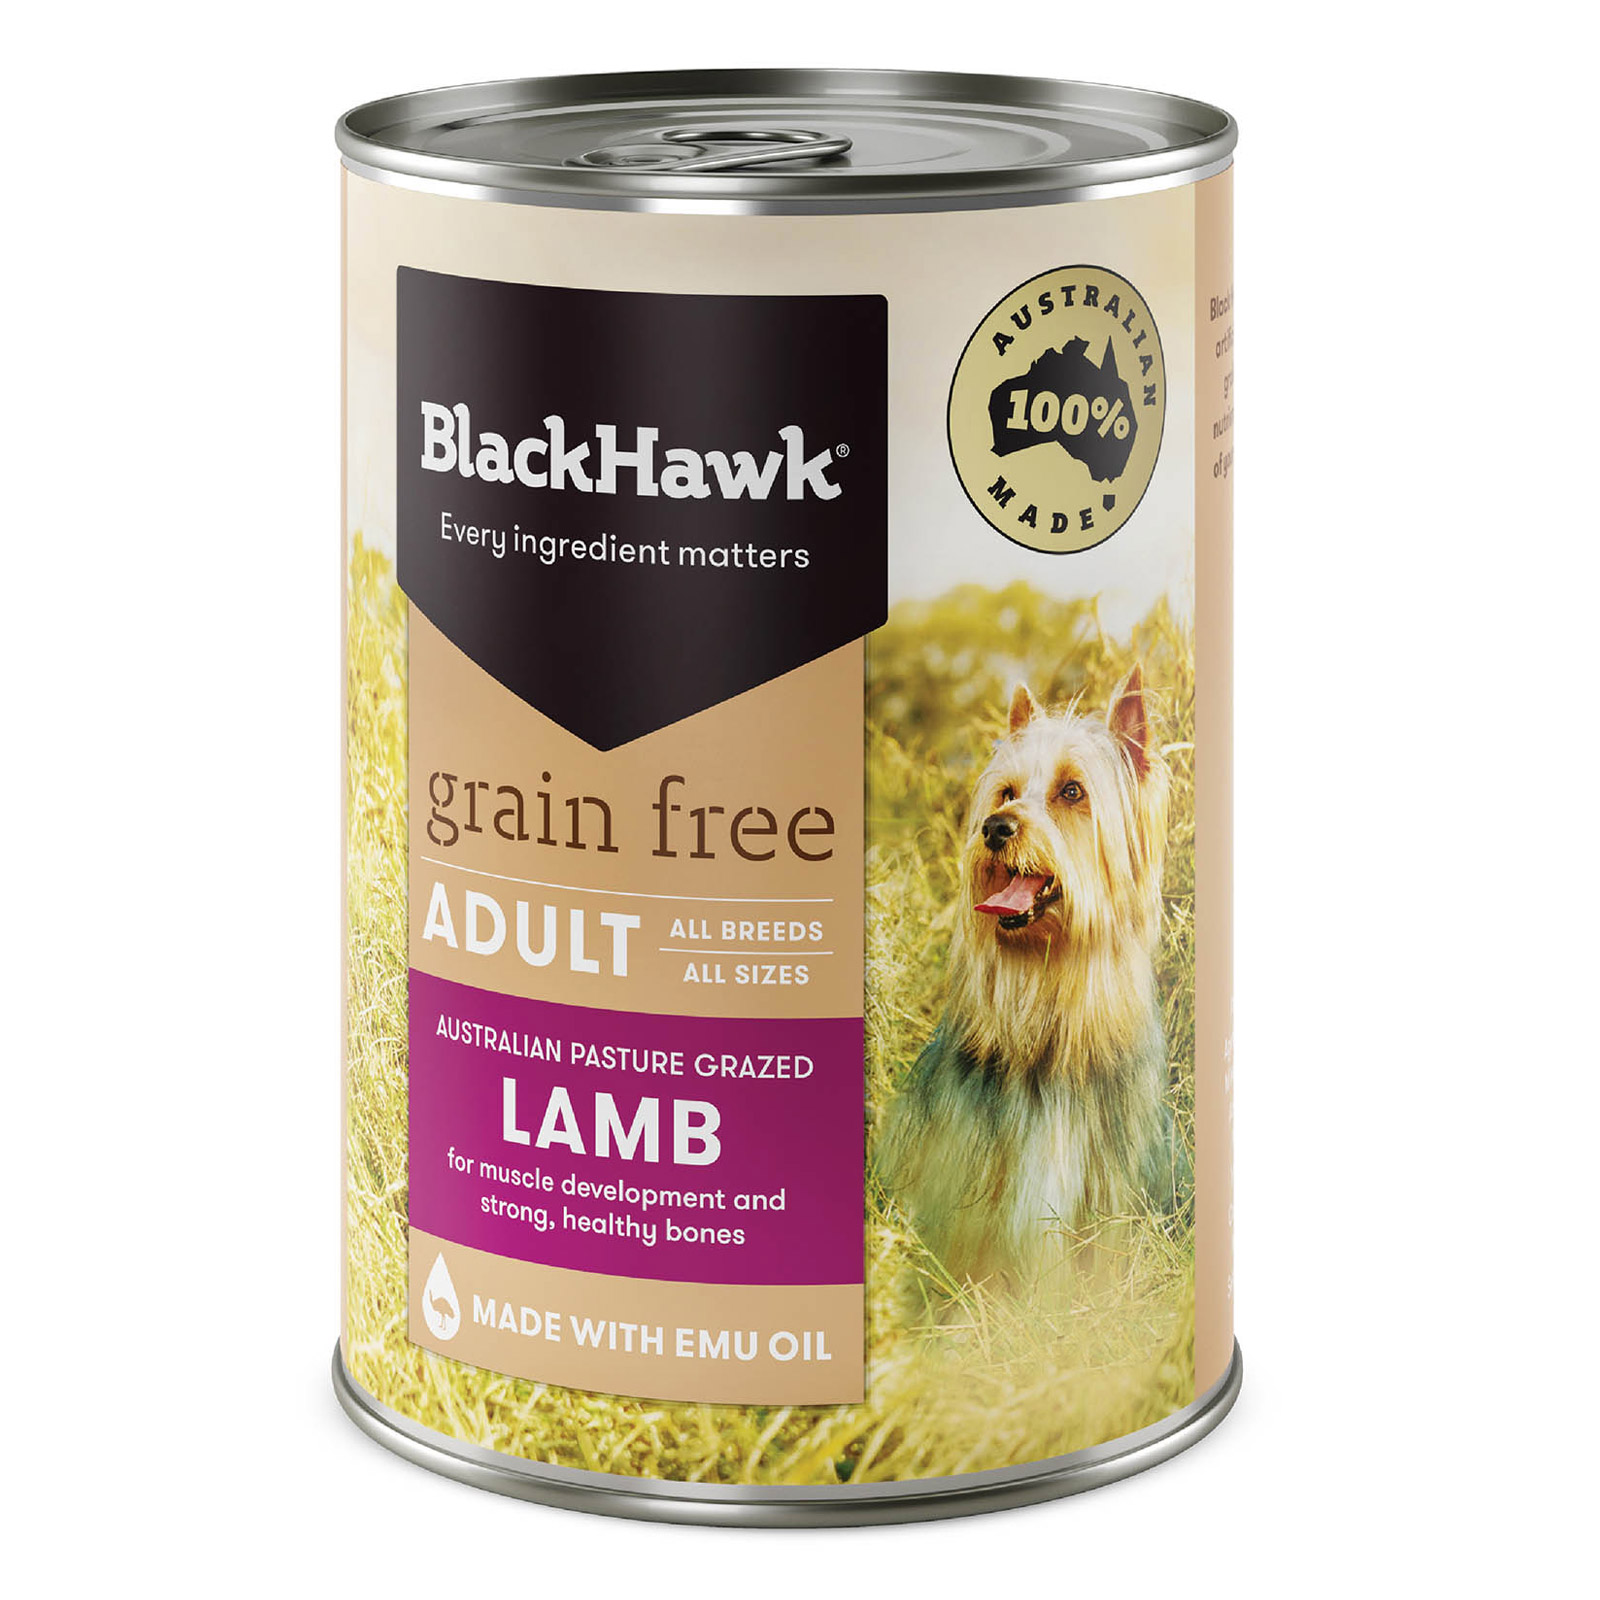 Black-Hawk-Adult-Grain-Free-Lamb-Dog-Food-400g.jpg